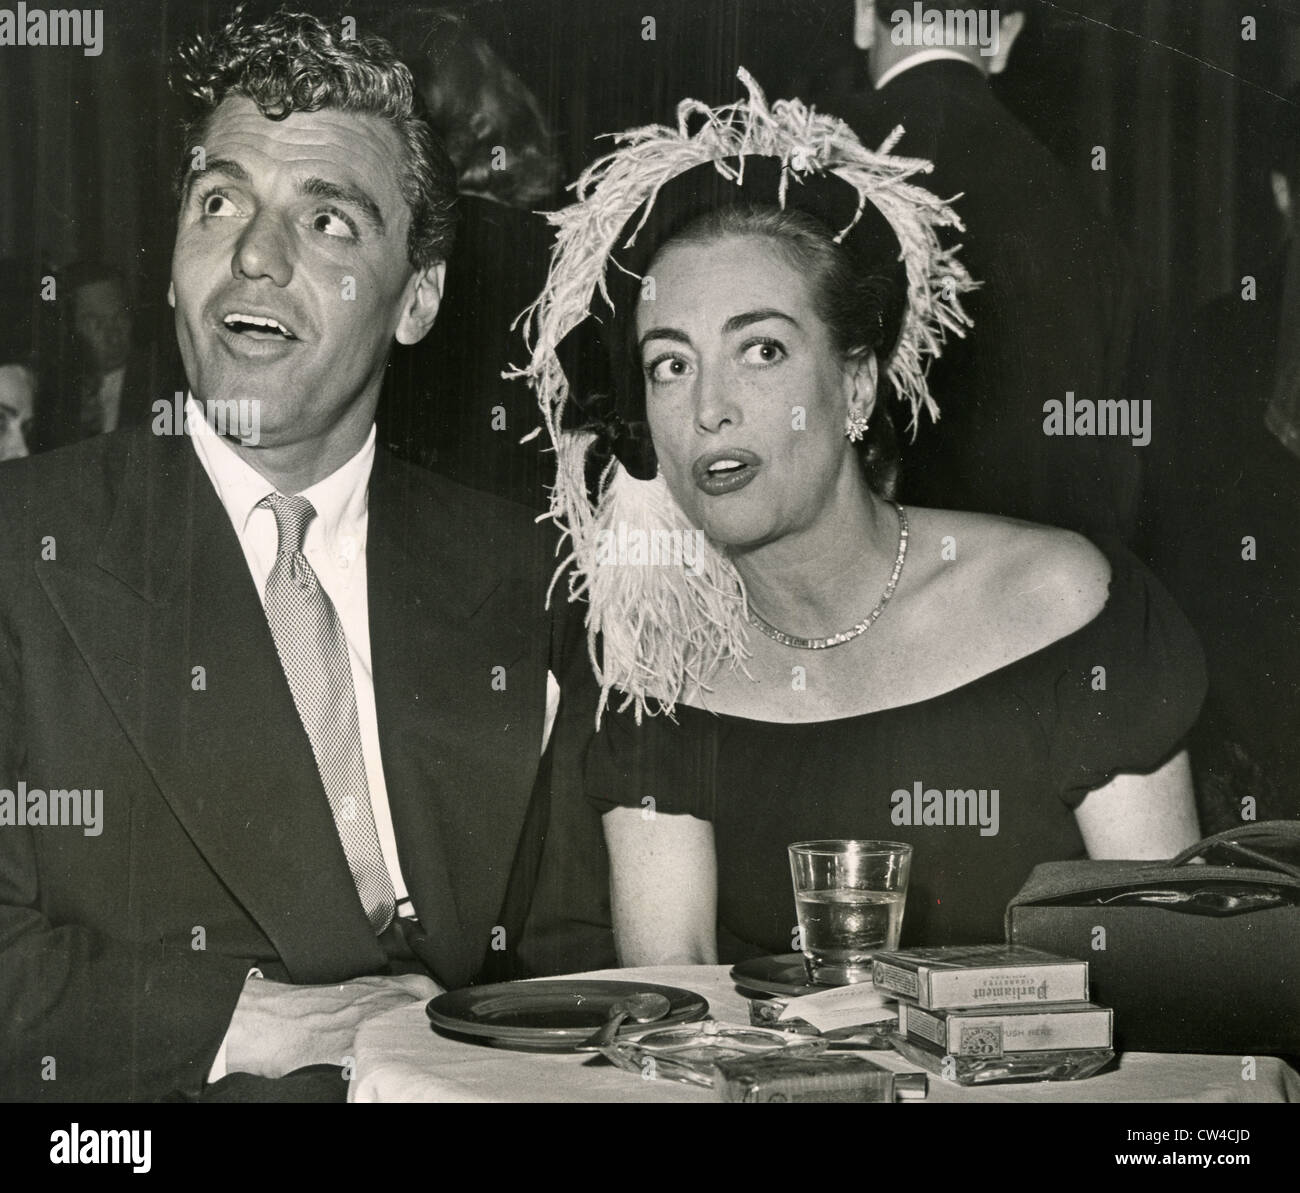 JOAN CRAWFORD US film actress with Greg Bautzer about 1950 - Stock Image